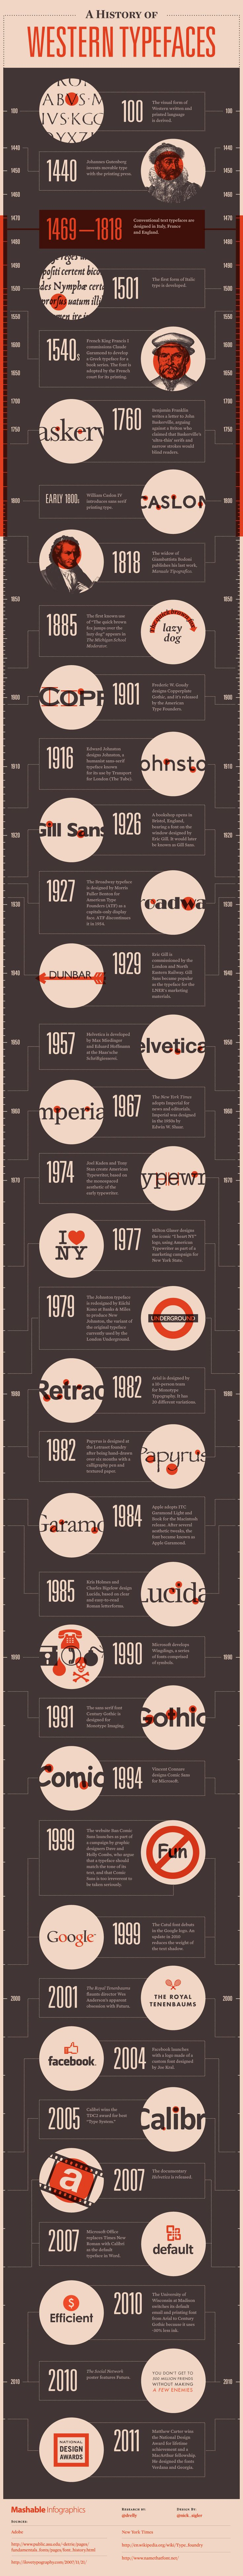 Love this! I had no idea Garamond was so old! A History of Western Typefaces [INFOGRAPHIC]